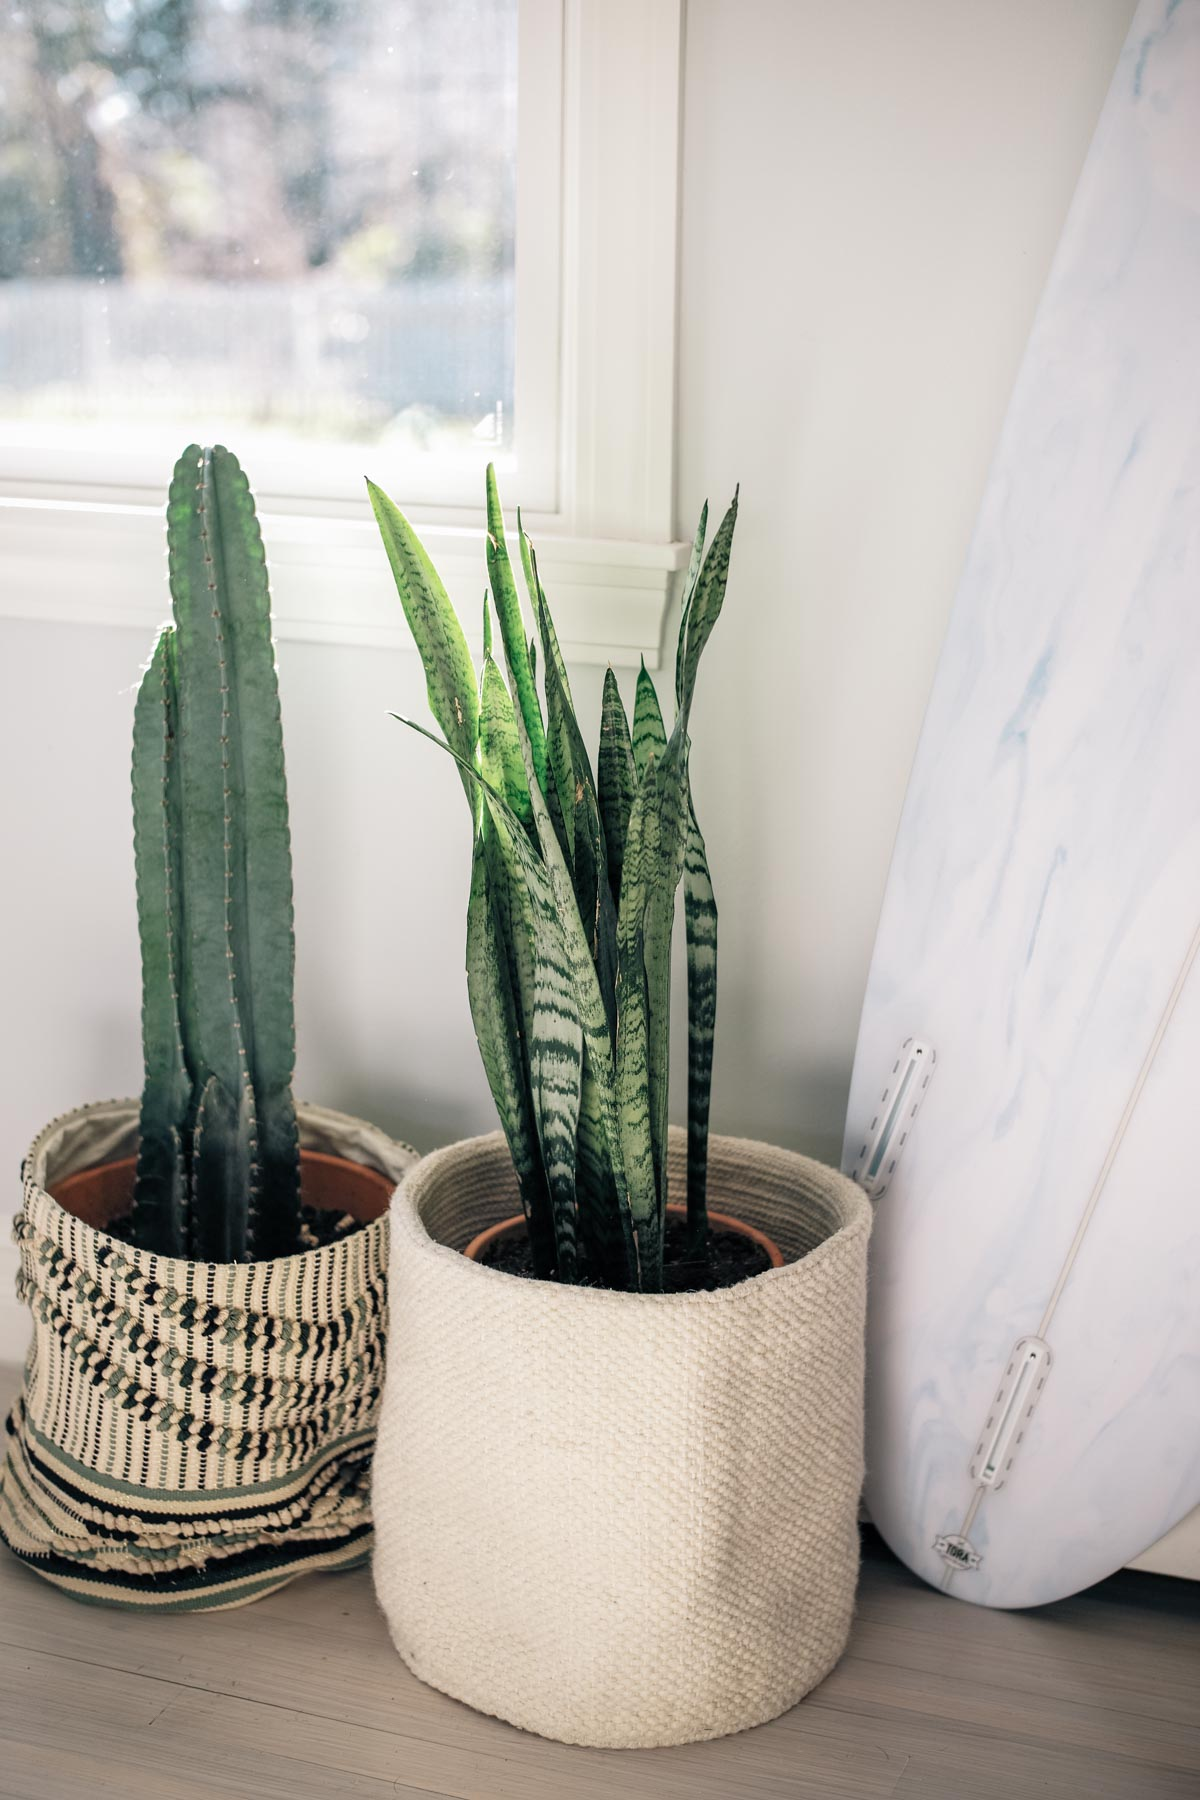 Jess Ann Kirby uses woven planters as home decor